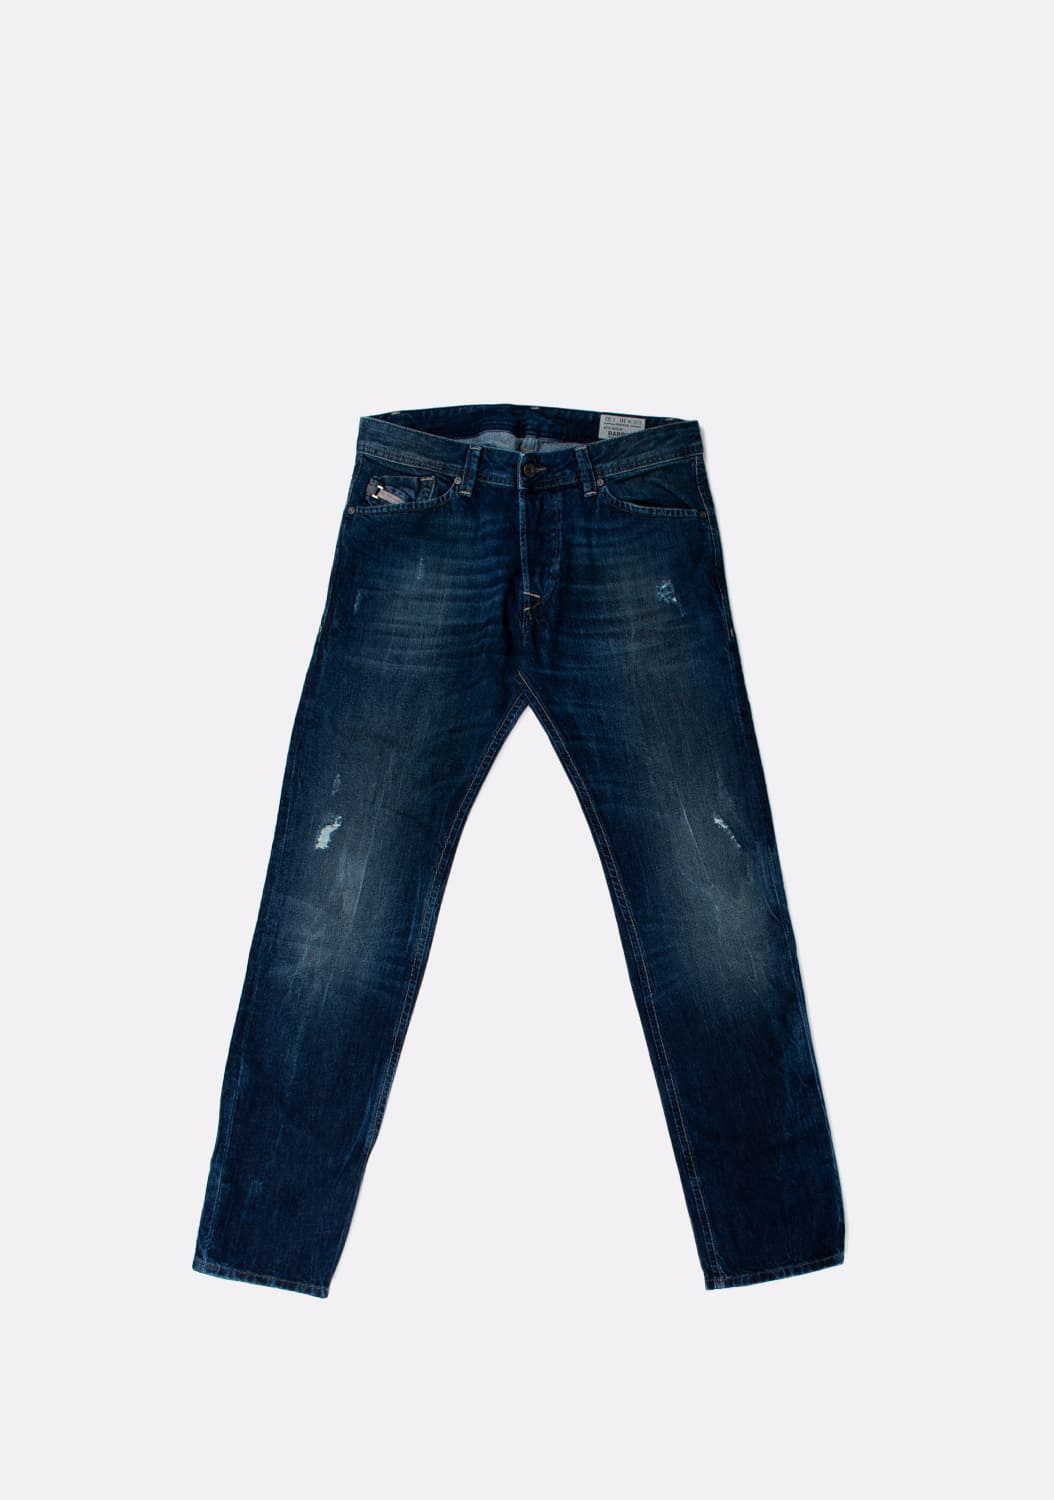 Diesel-Darron-OROLM-Regular-Slim-Tapered-melyni-dzinsai-dydis-30-32 (2)